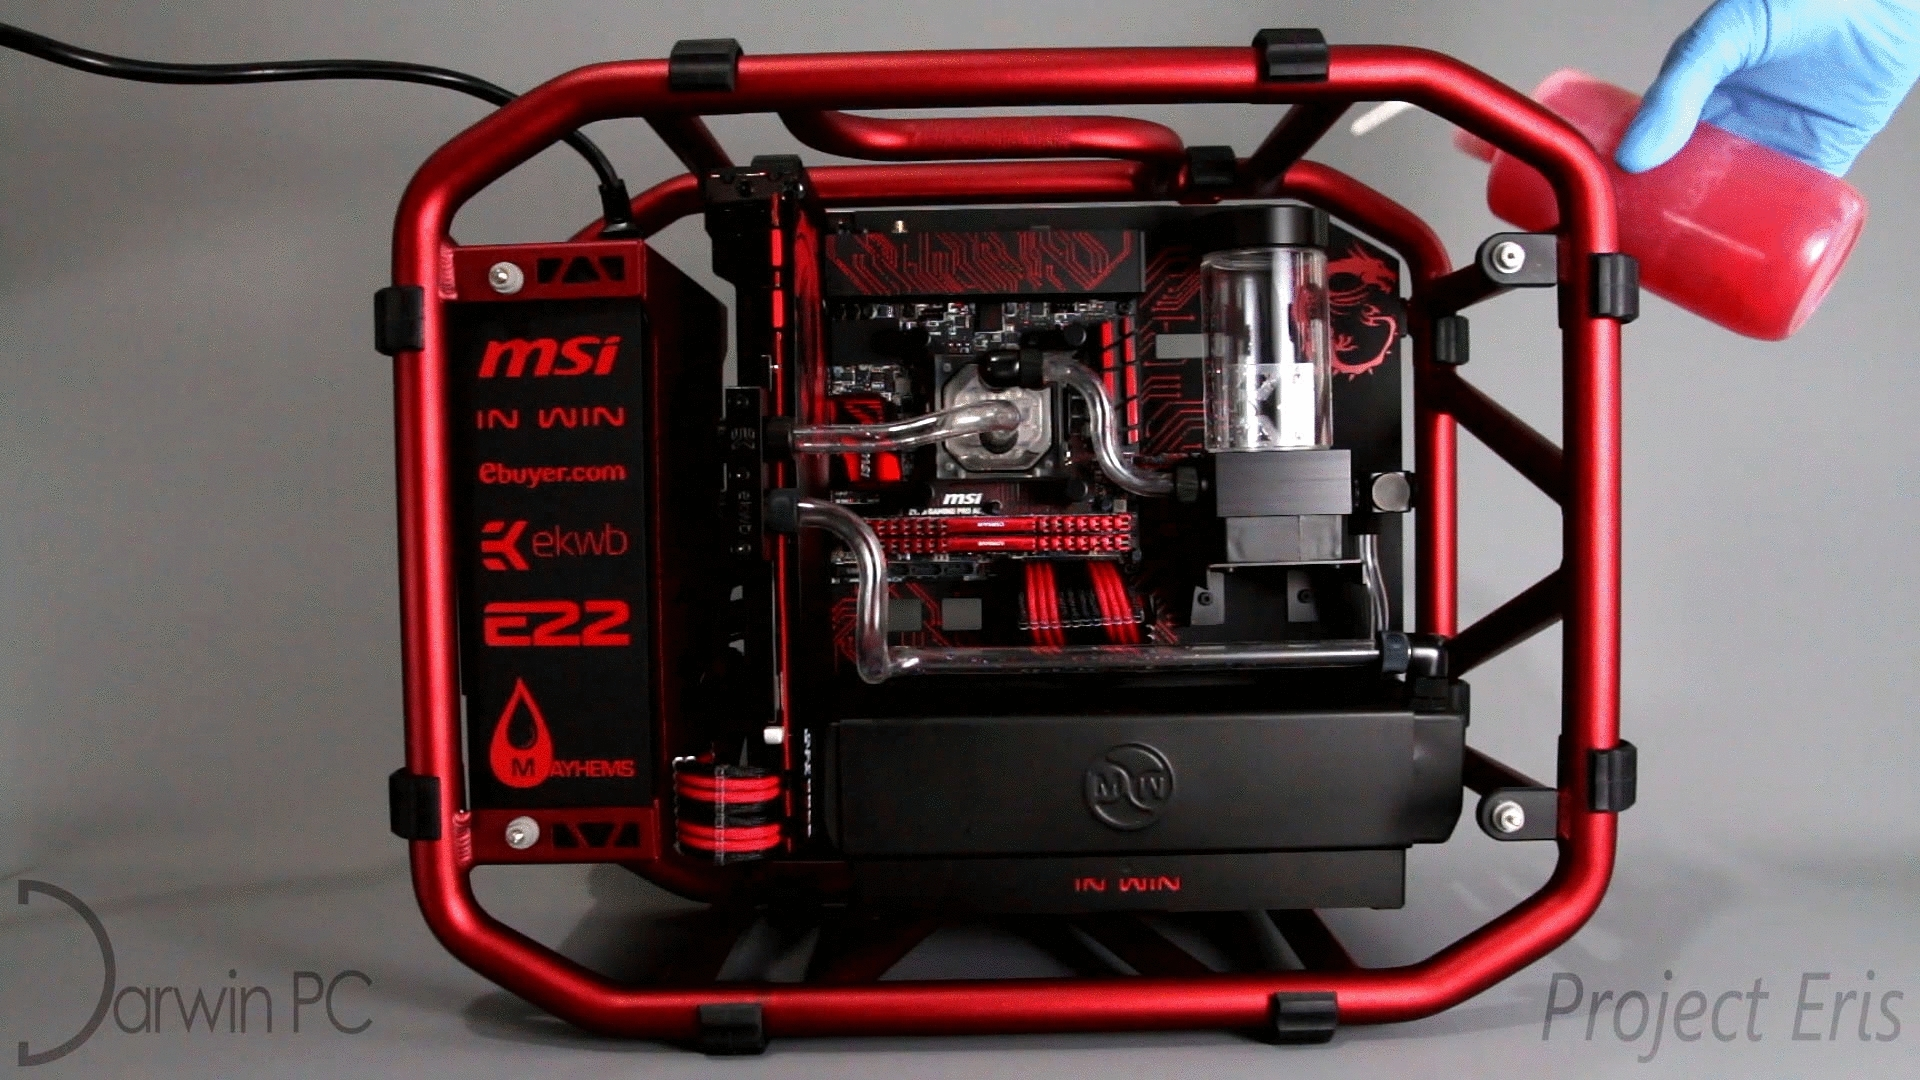 custompc, gamingpc, watercooling, Project Eris by Darwin PC - filling watercooling loop with Mayhems Aurora red GIFs